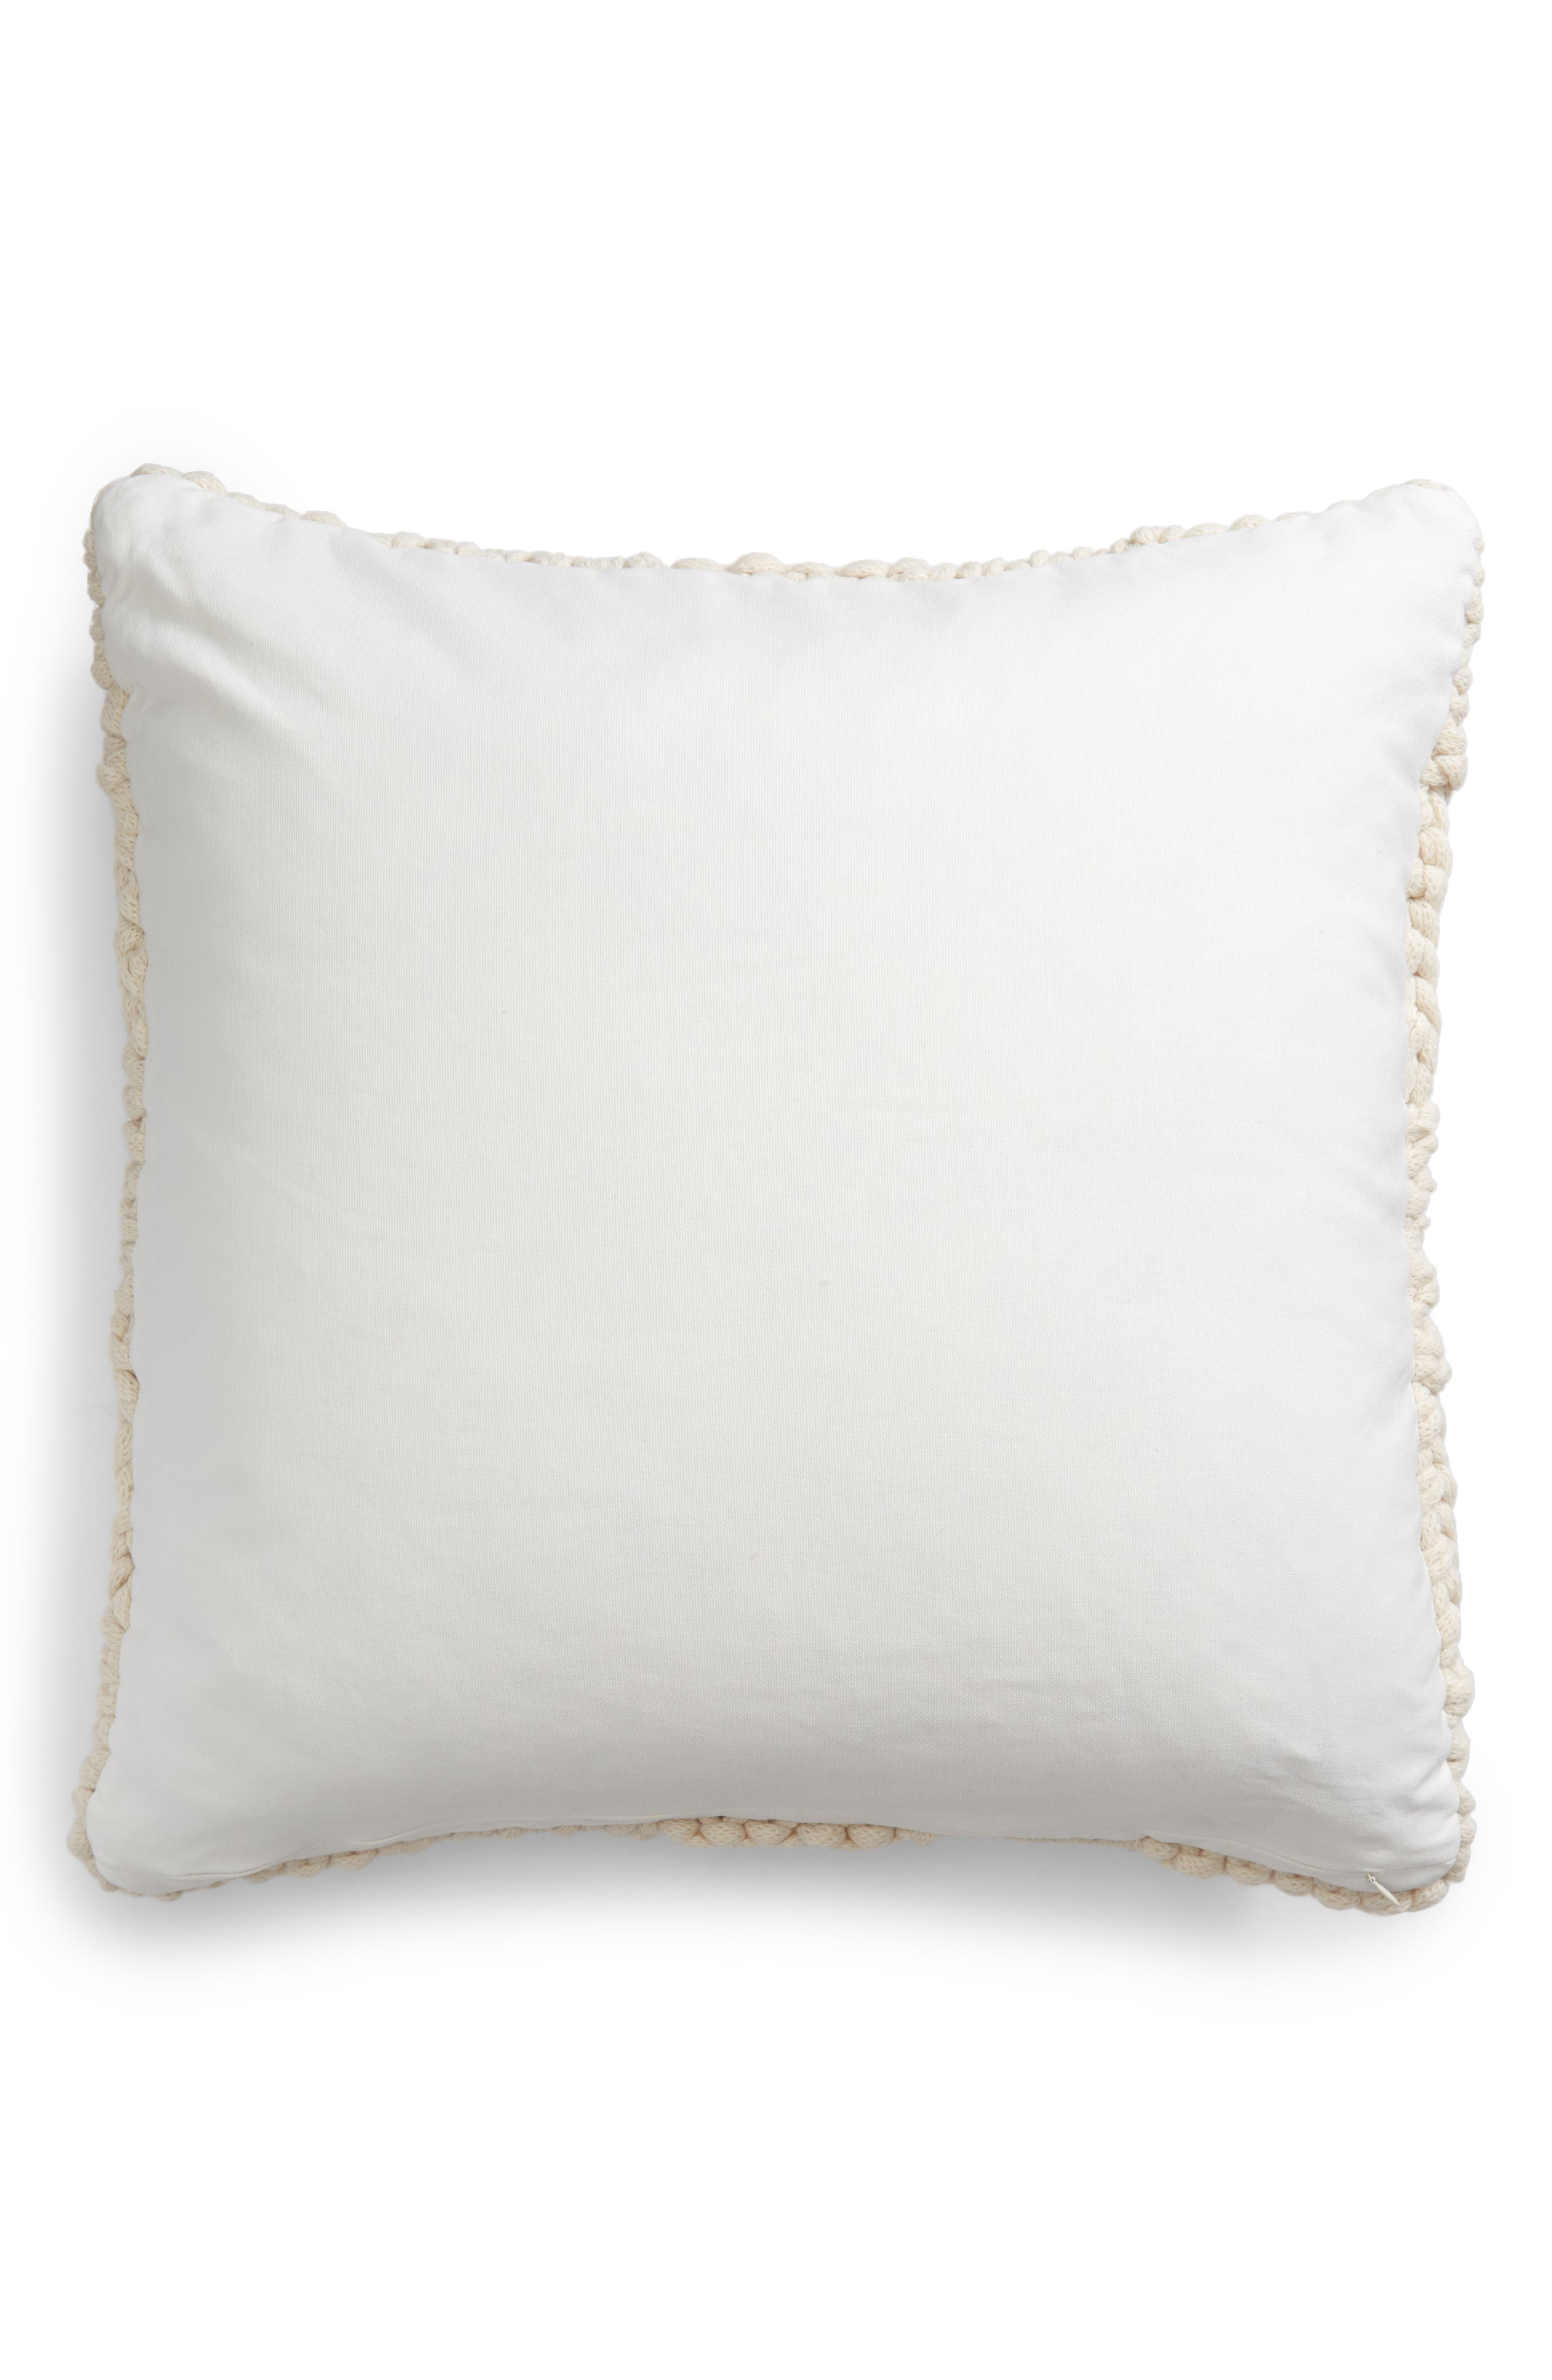 Jersey Rope Basket Accent Pillow,                             Alternate thumbnail 2, color,                             IVORY